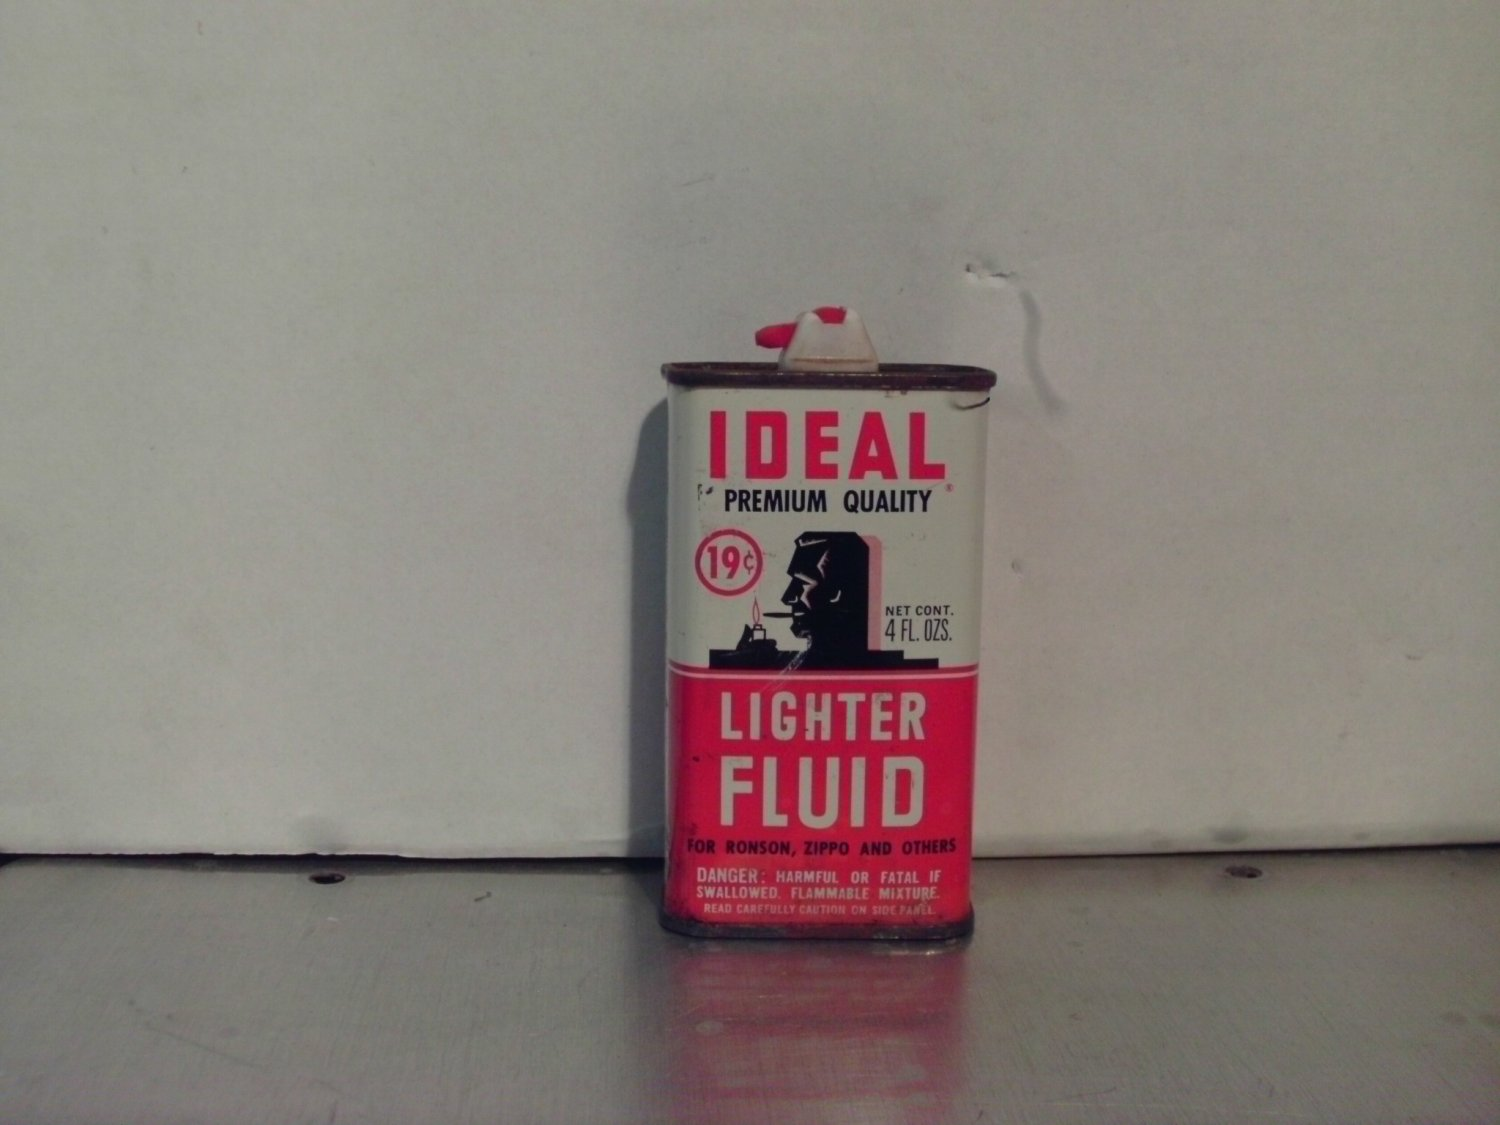 Ideal Lighter Fluid Tin Can with Flip Top Spout